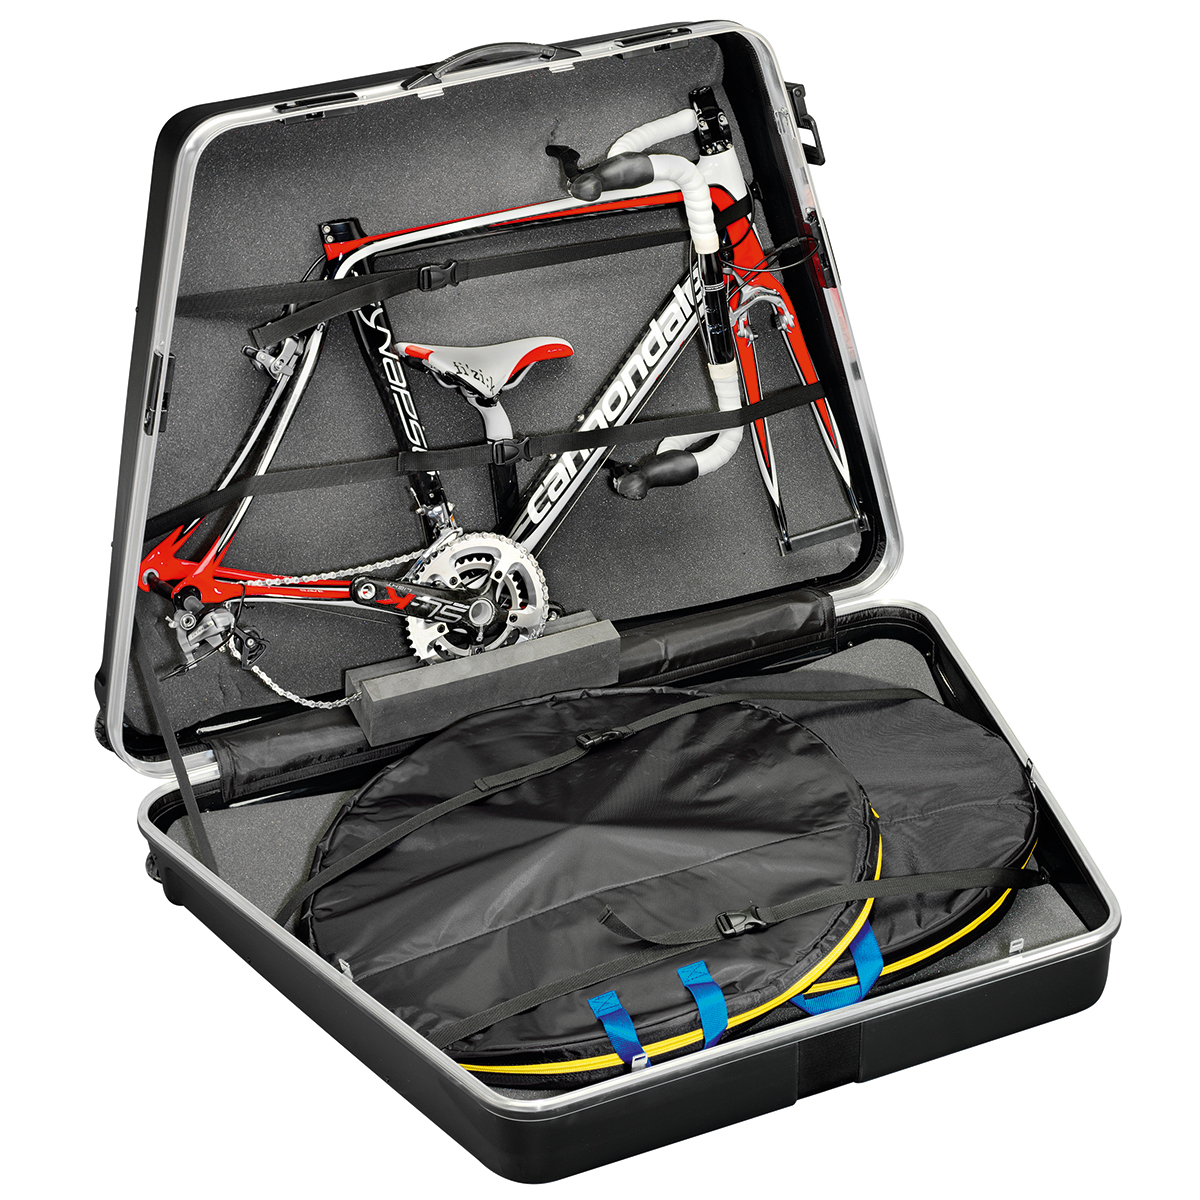 Best Travel Road Bike Boxes & Bags Reviewed | Cyclist